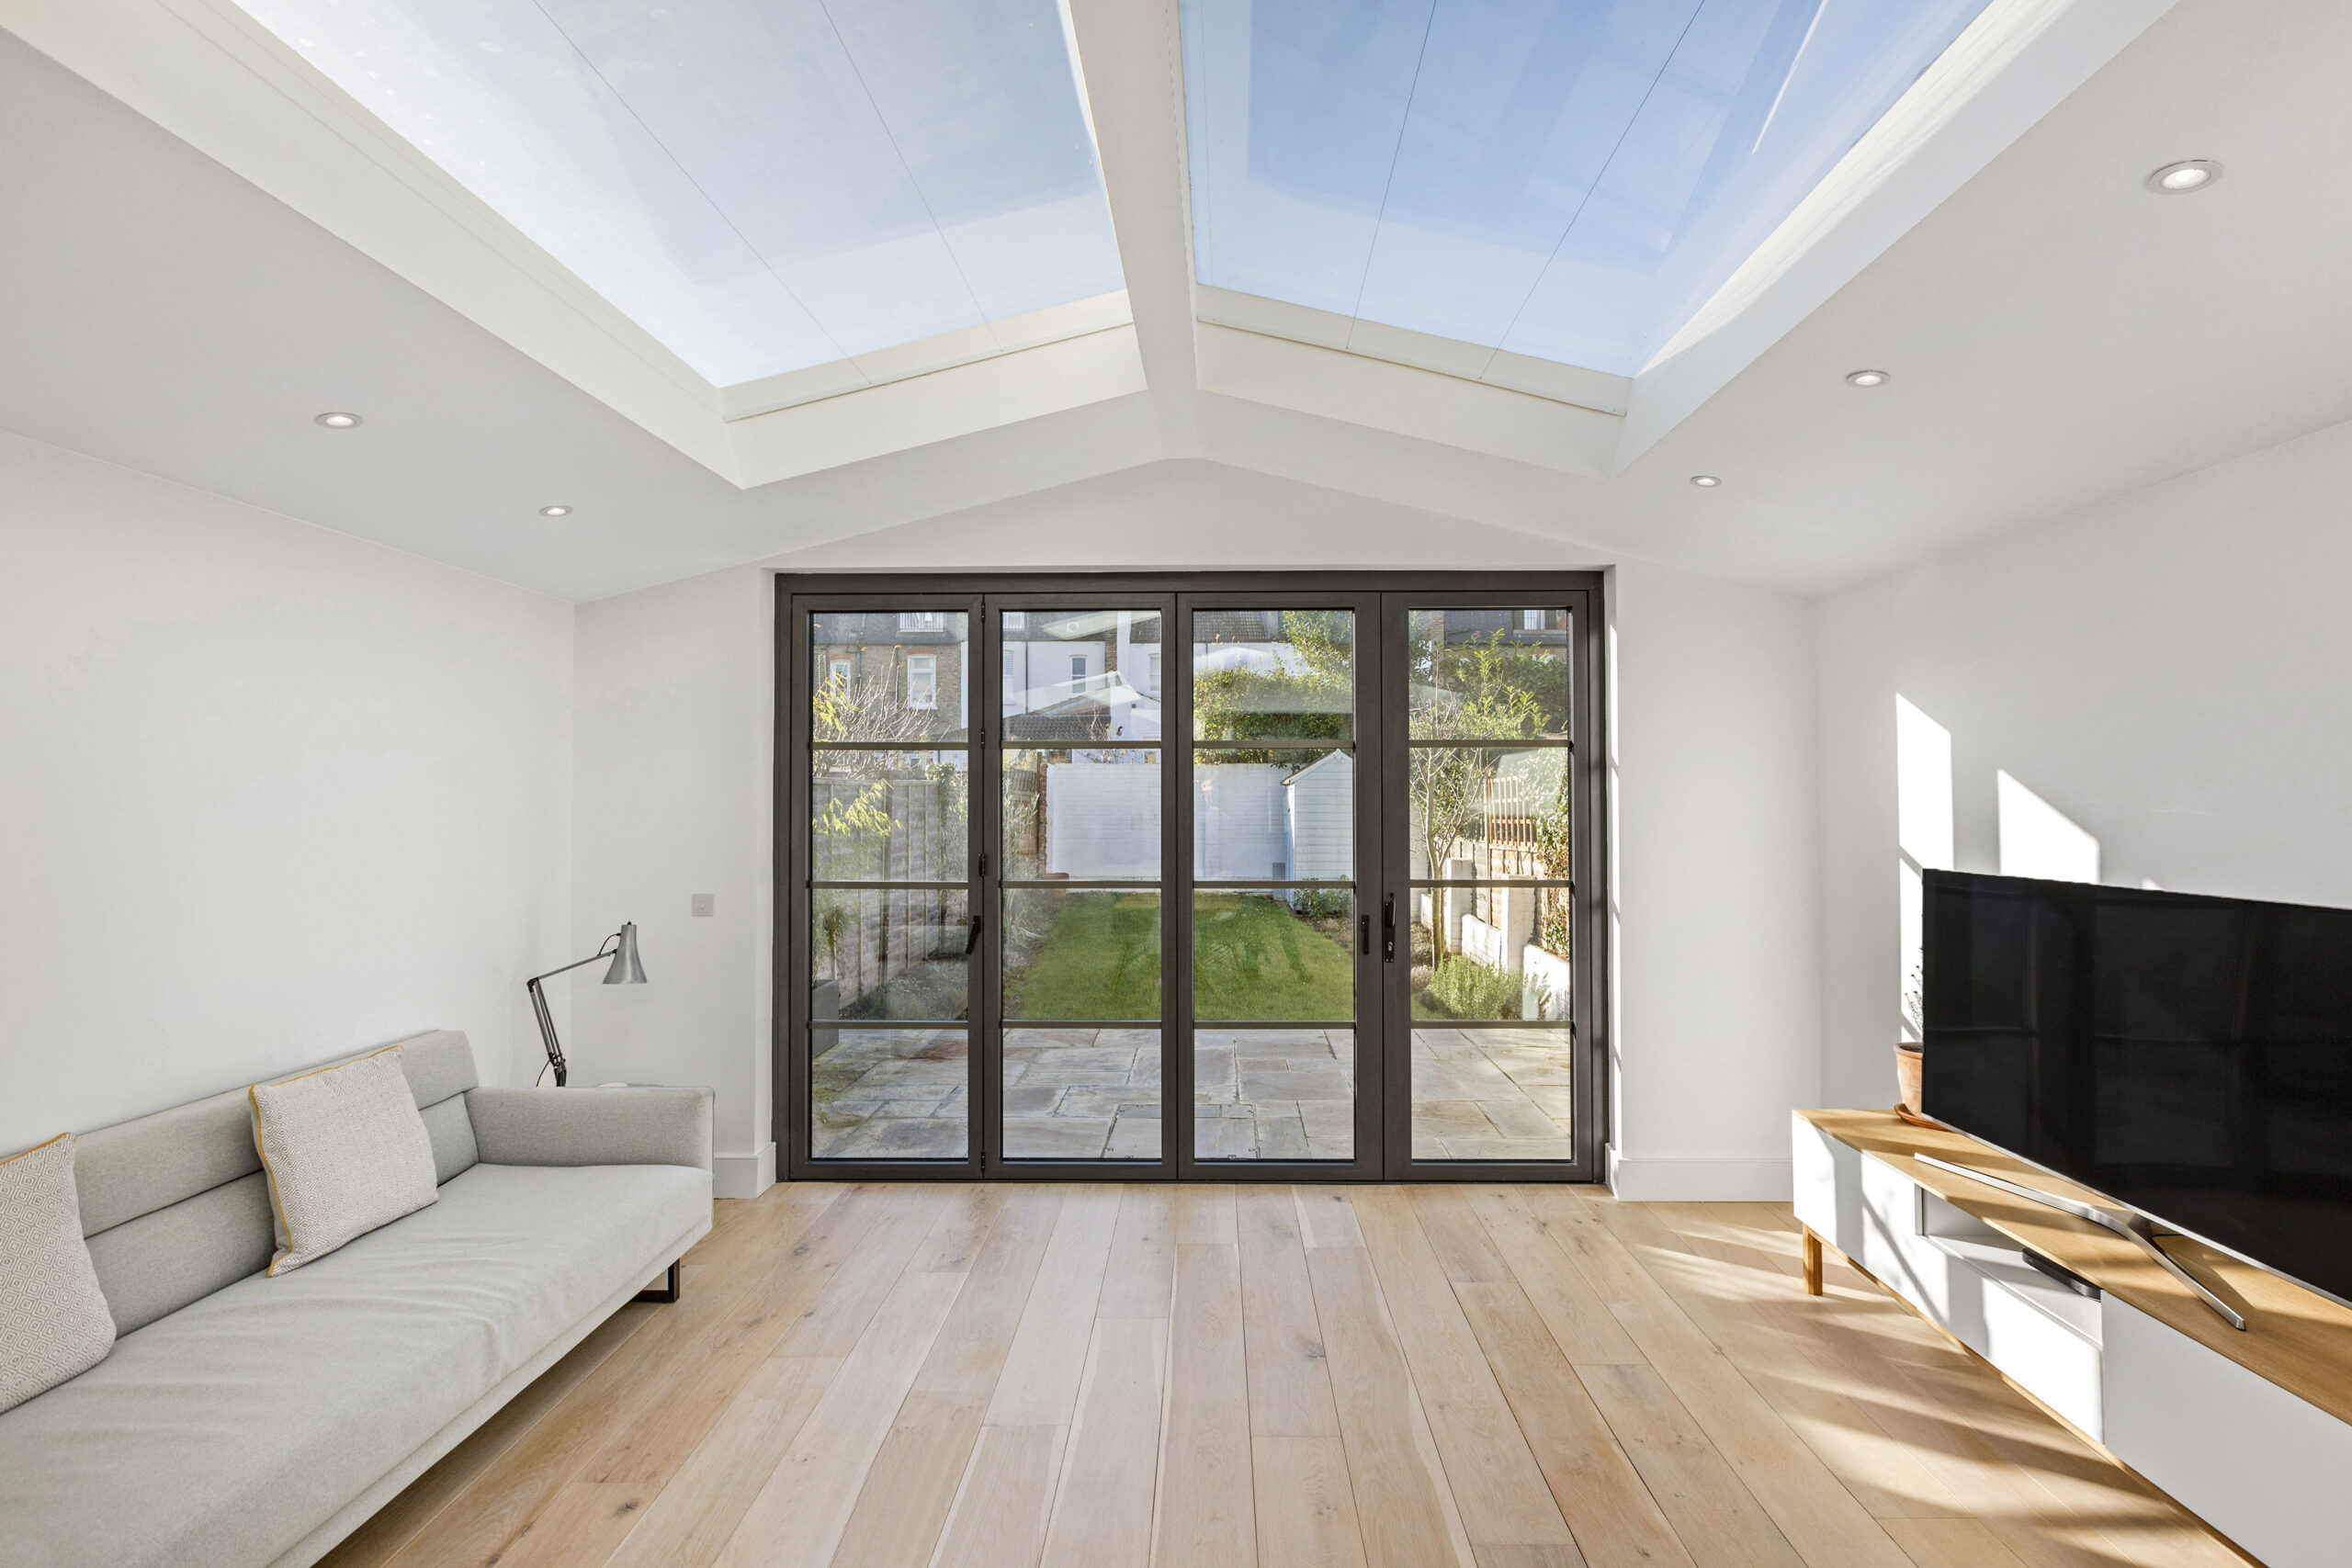 London Roof Windows Installer Glazing Glass RoofingBespoke Made To Measure Aluminium